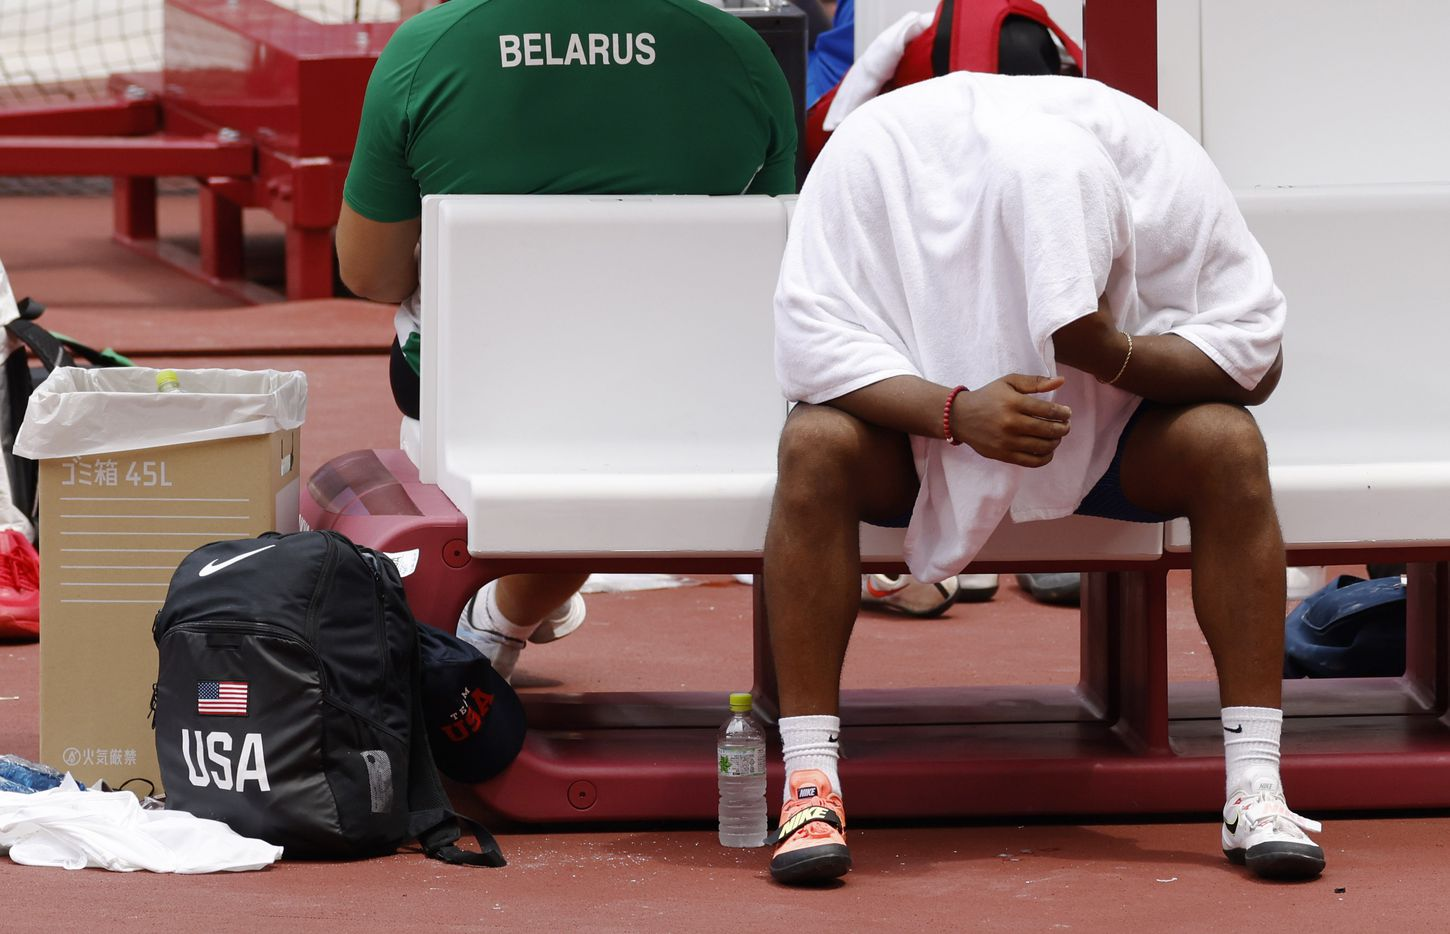 USA's Reggie Jagers III sits dejected on the bench after not qualifying for the next round with a discus throw of 61.47 meters during the men's discus throw qualification round during the postponed 2020 Tokyo Olympics at Olympic Stadium, on Friday, July 30, 2021, in Tokyo, Japan. (Vernon Bryant/The Dallas Morning News)